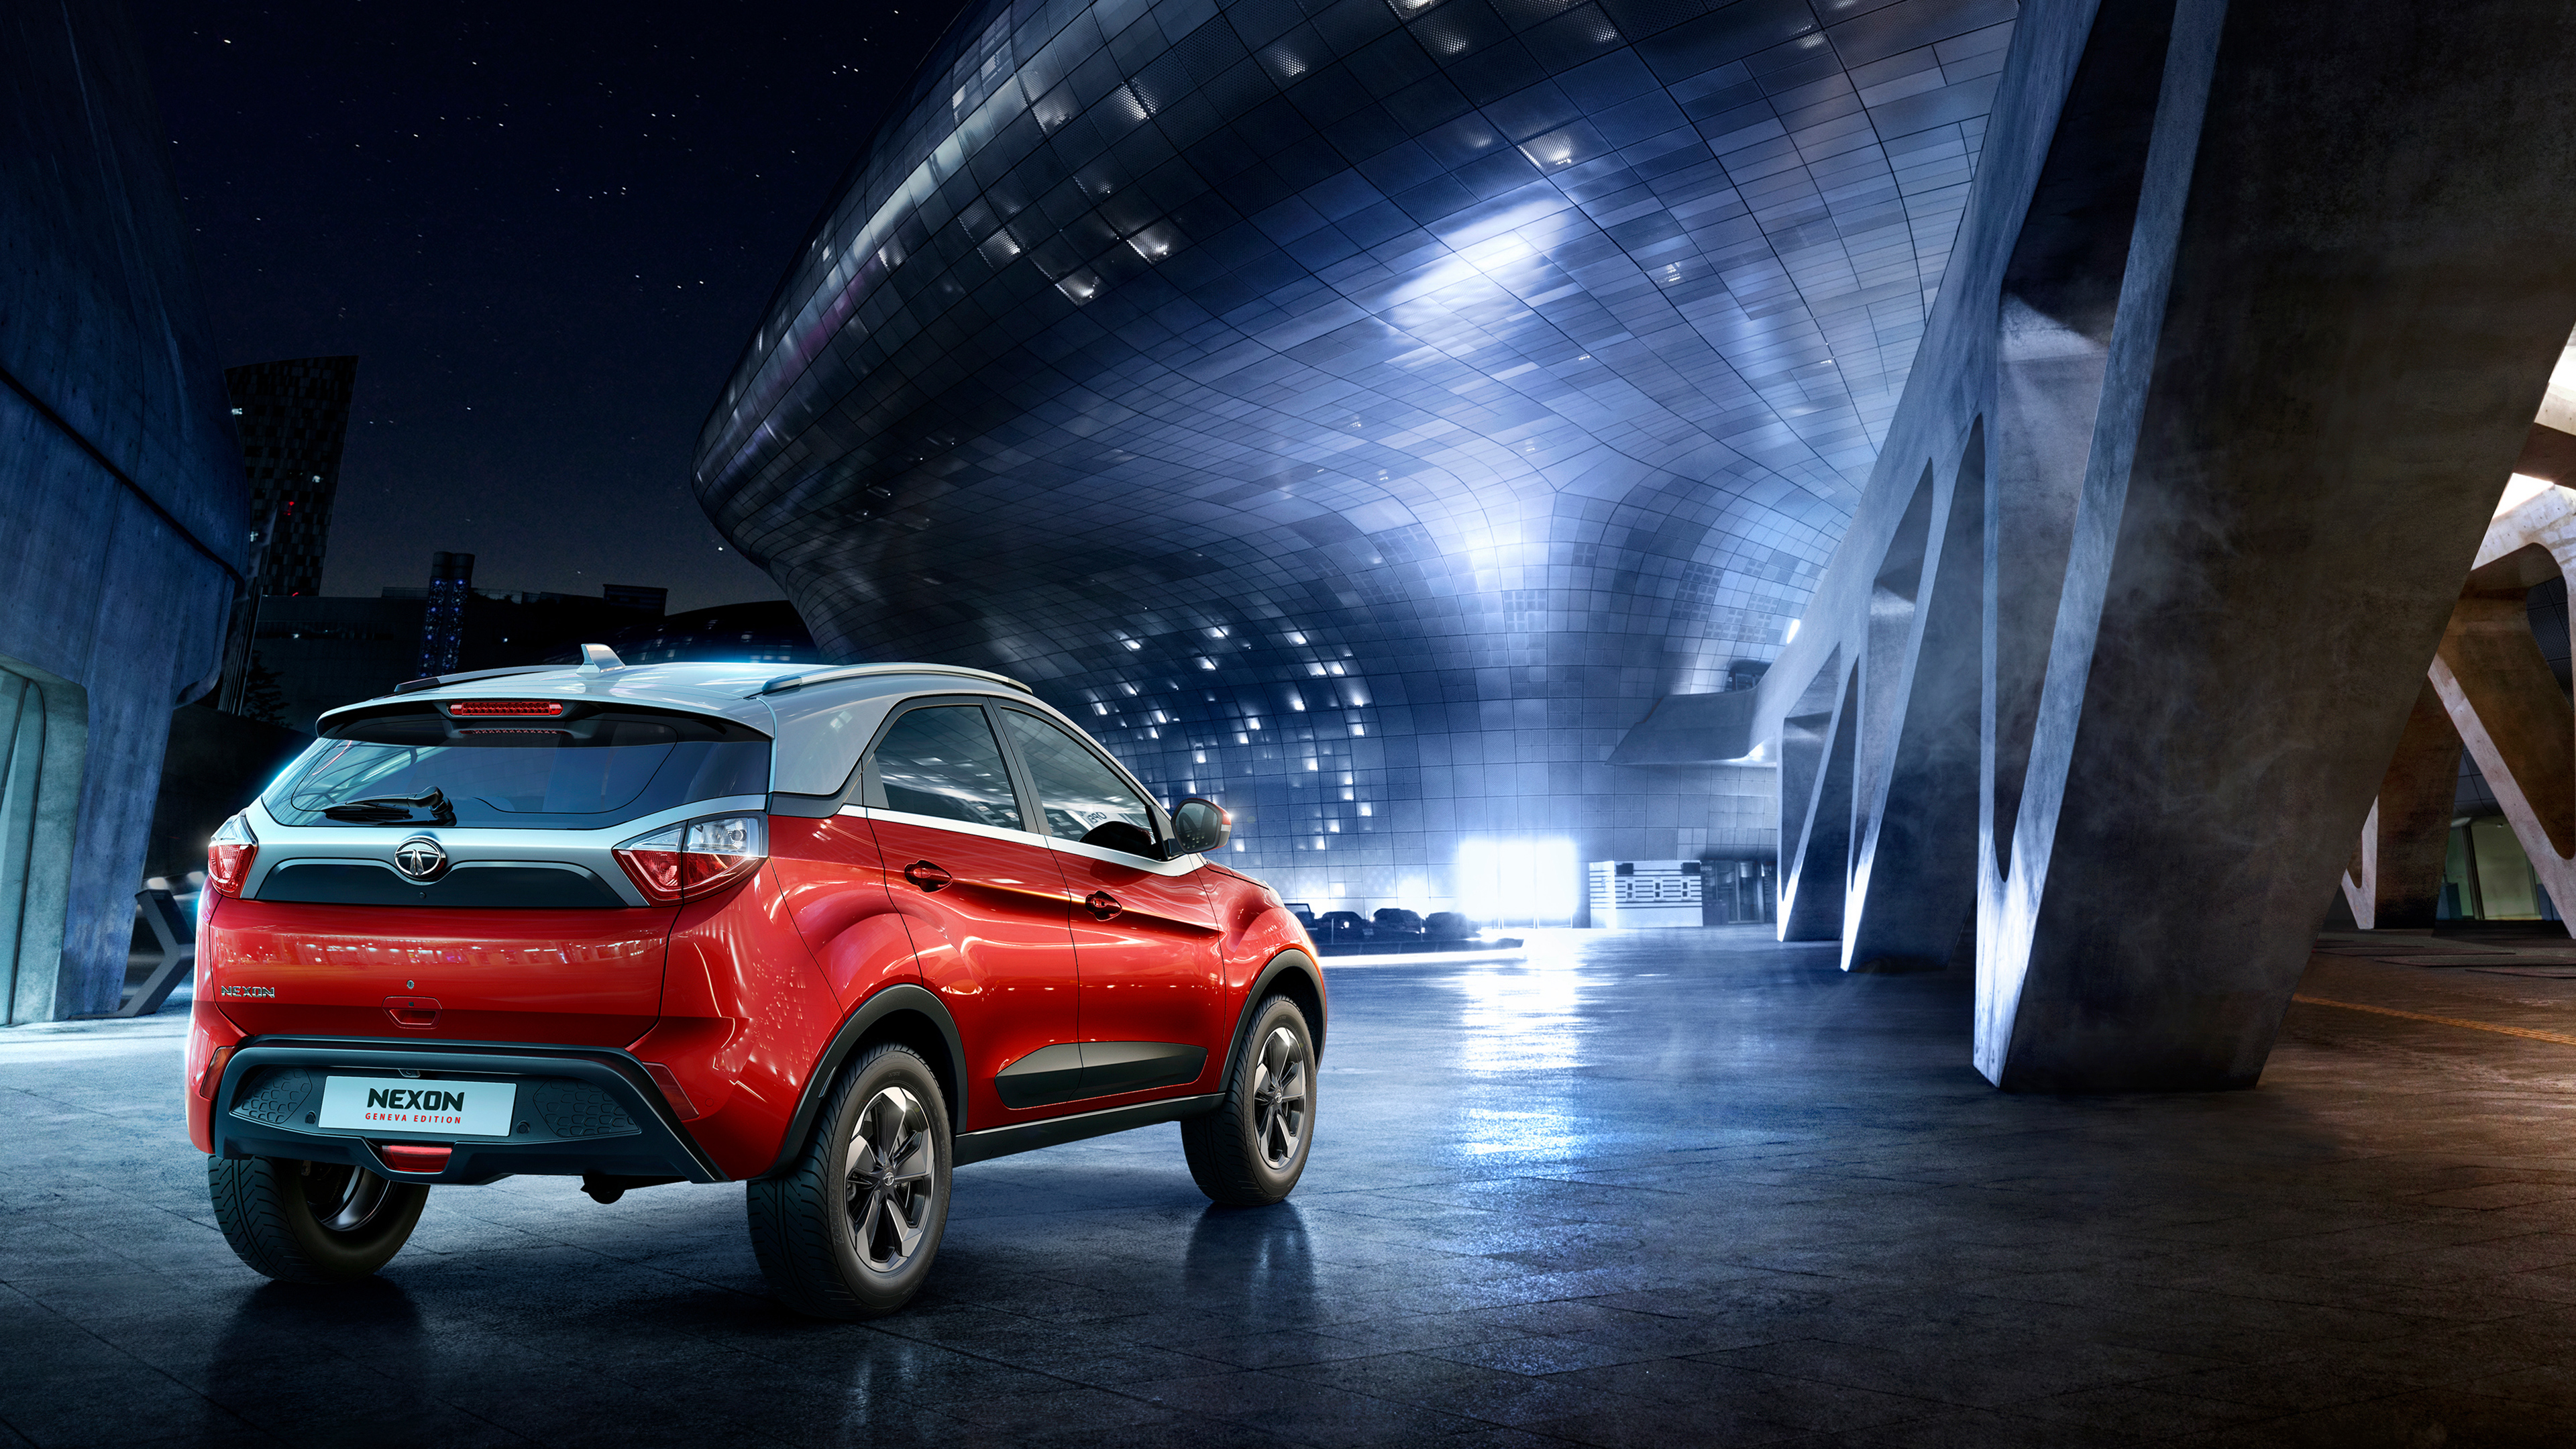 2018 tata nexon geneva edition 4k 2 wallpaper hd car - Wallpaper hd 4k car ...